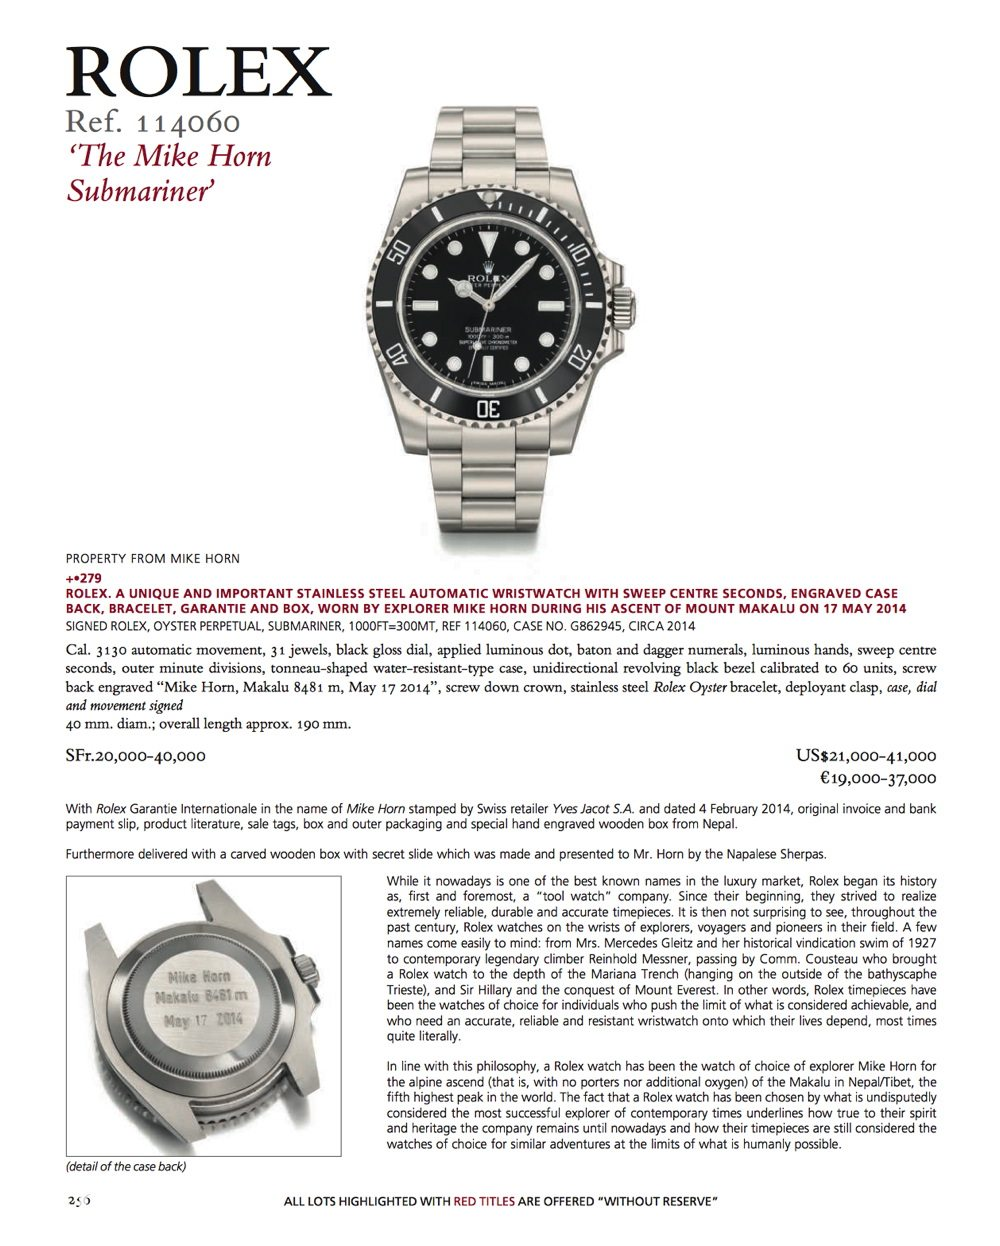 RPR_Rolex_geneva_auction_2015_135